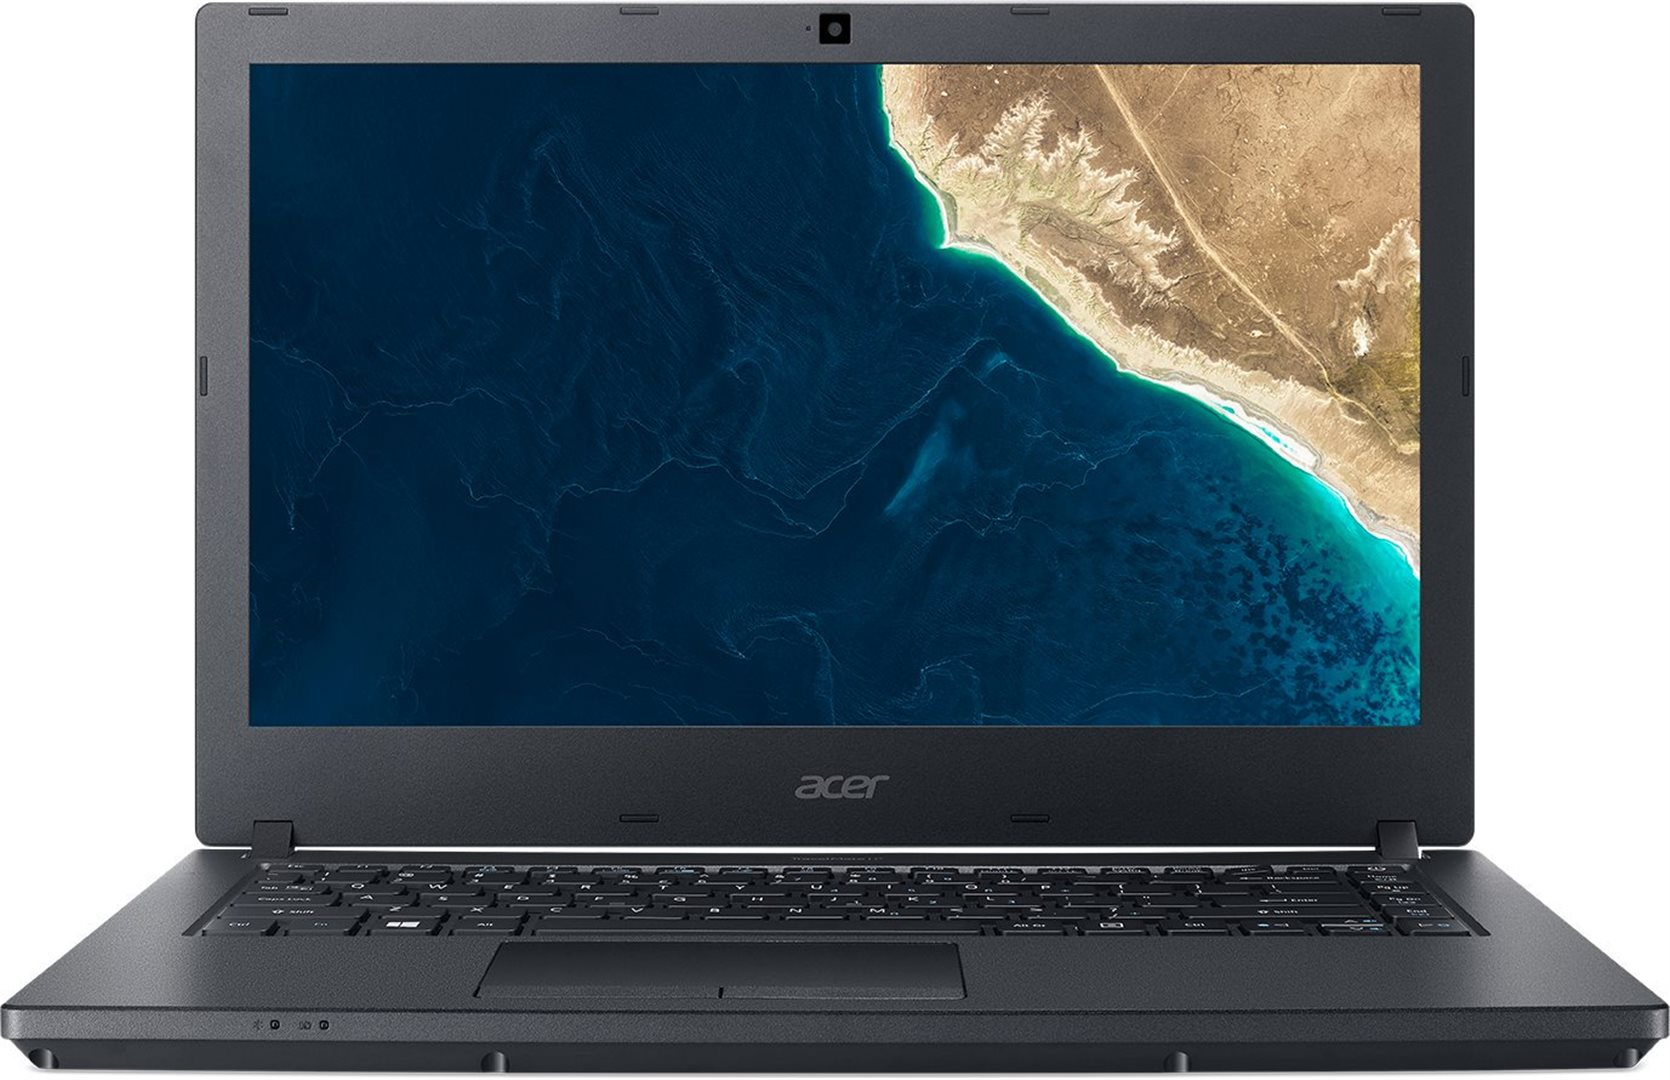 Driver for Acer Aspire 55s